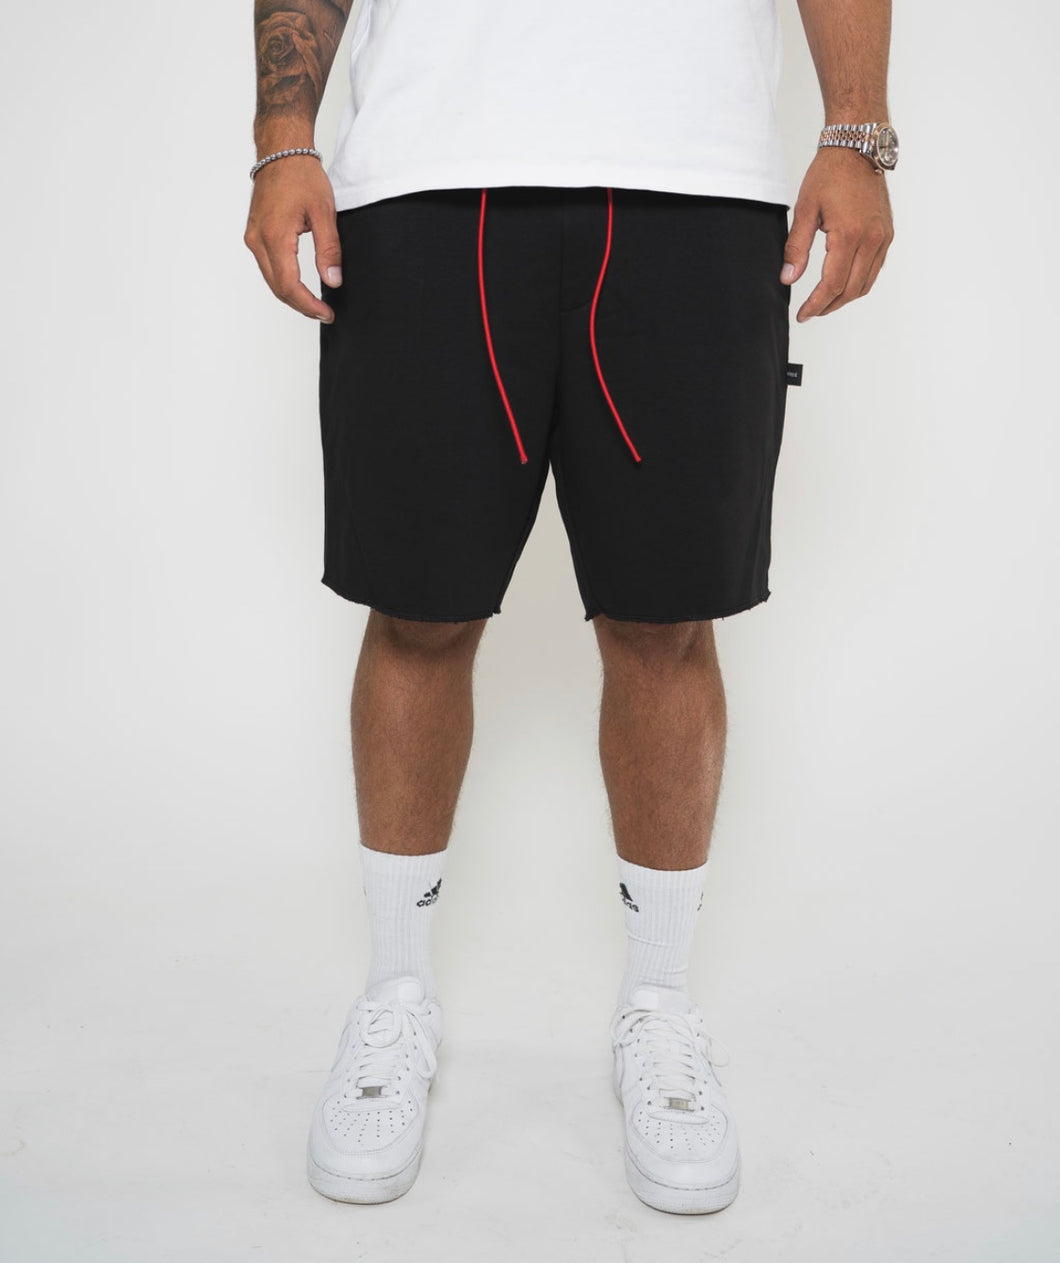 Ivoqué Shorts Black / Red